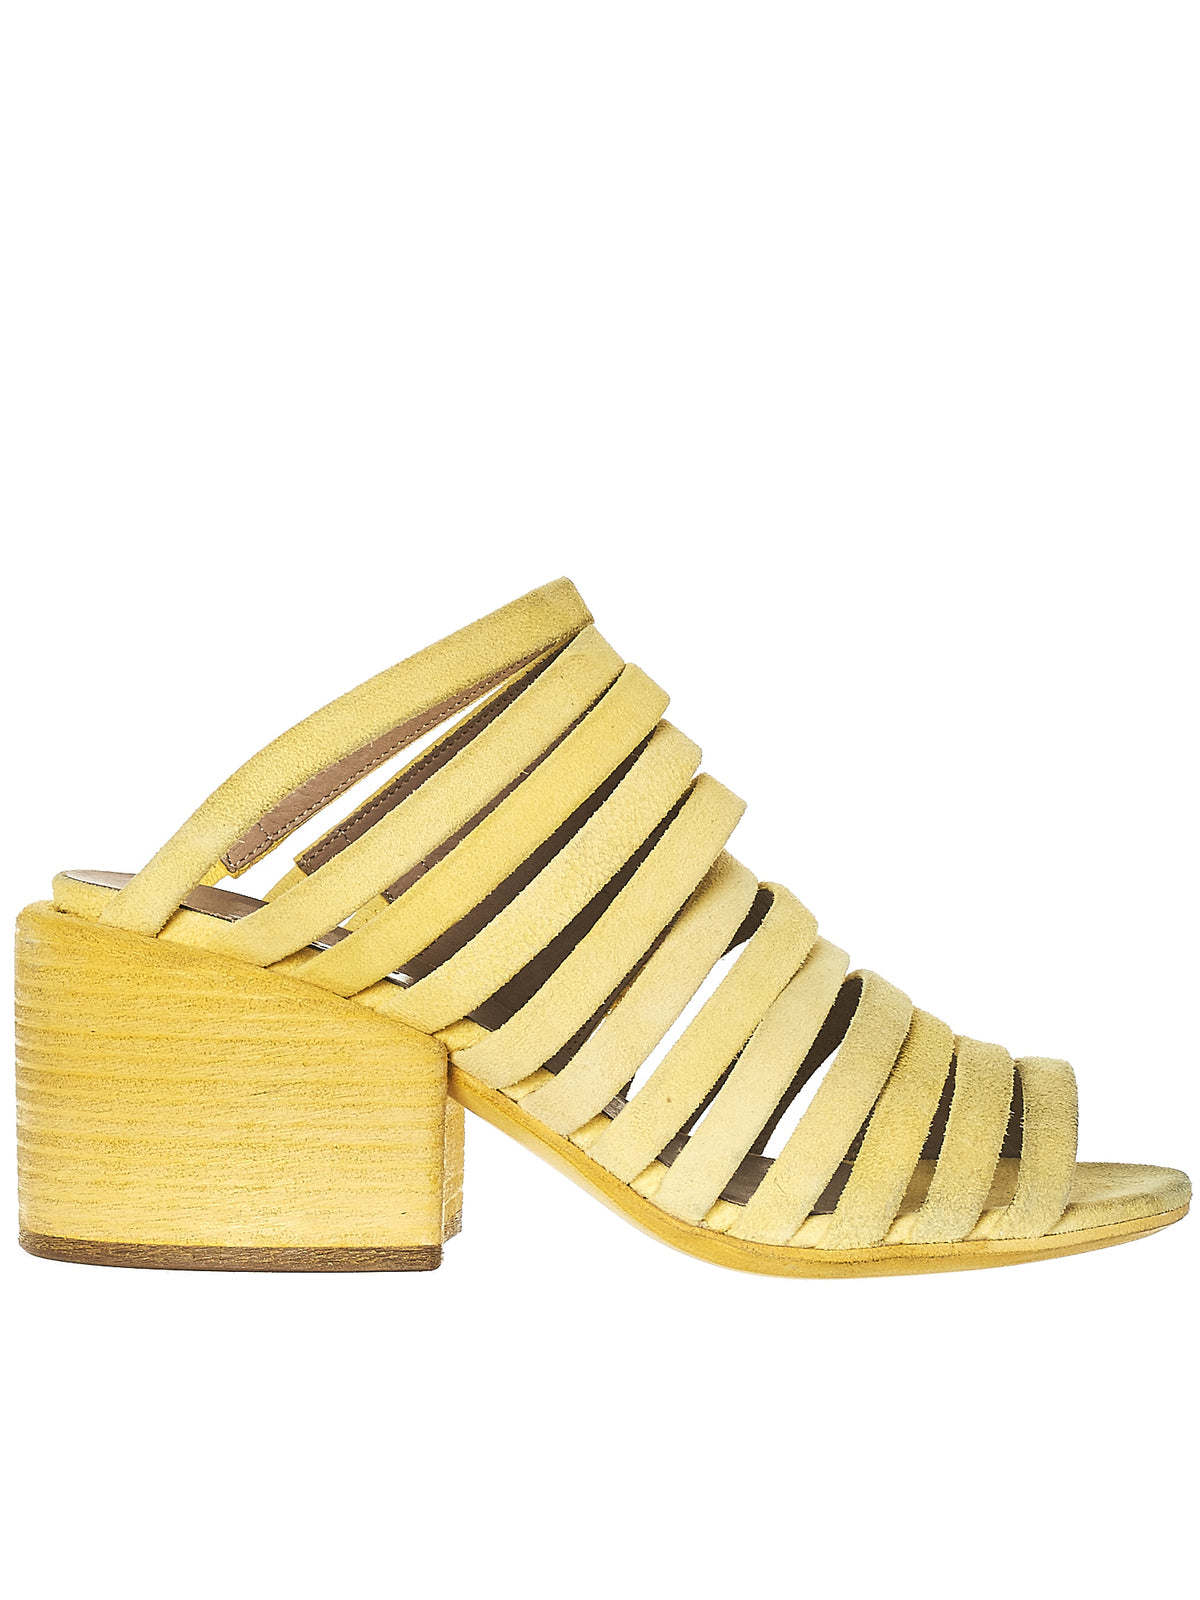 Marsell Leather Sandal - Hlorenzo Front